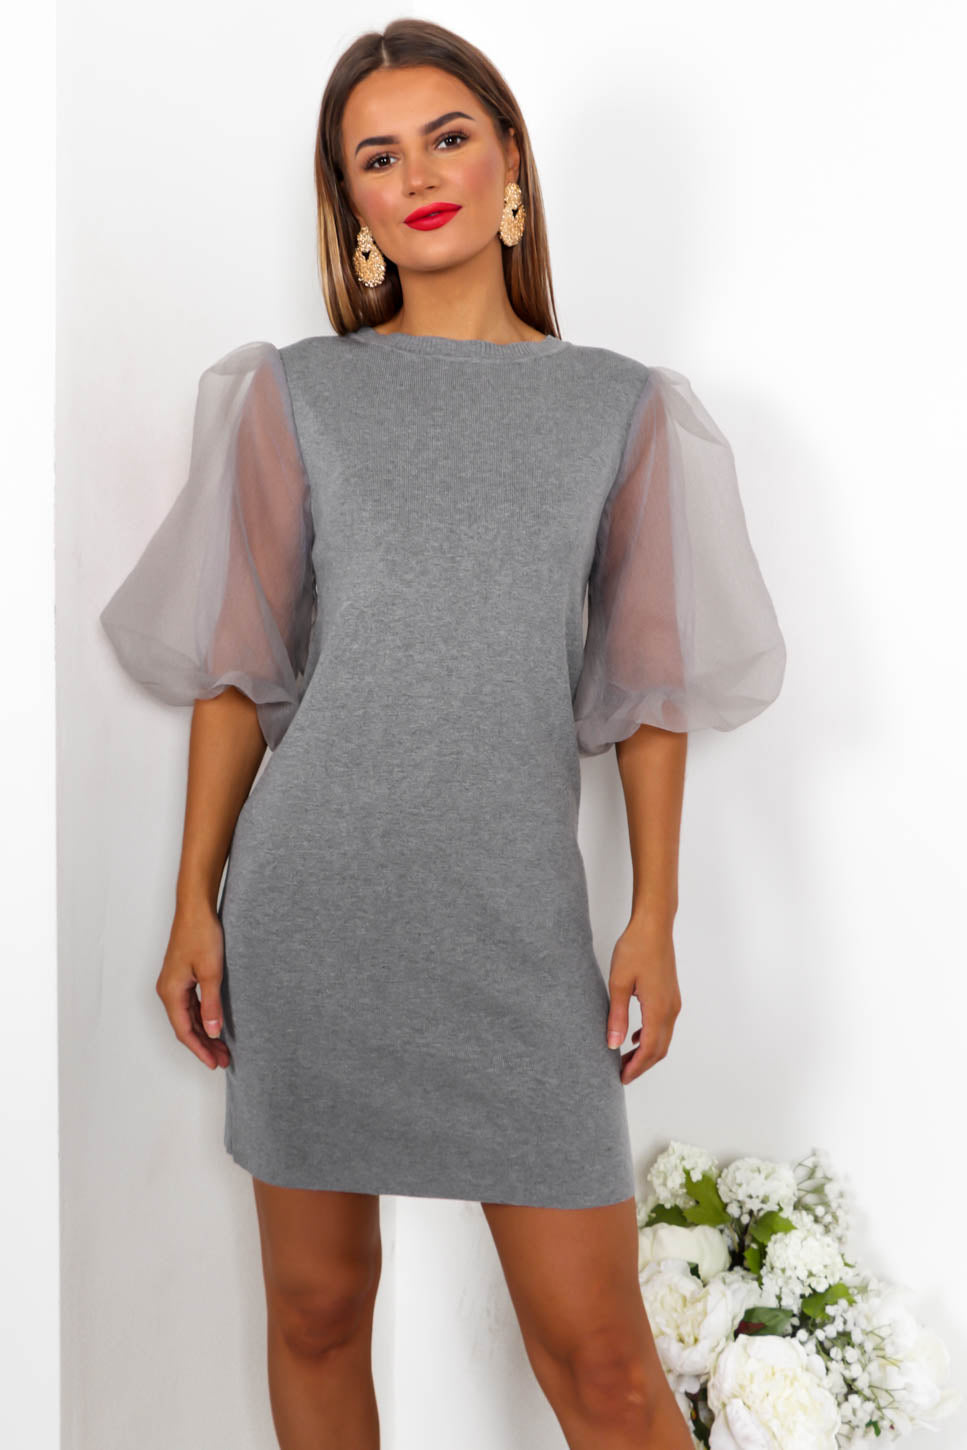 Right Sheer Right Now - Mini Dress In GREY